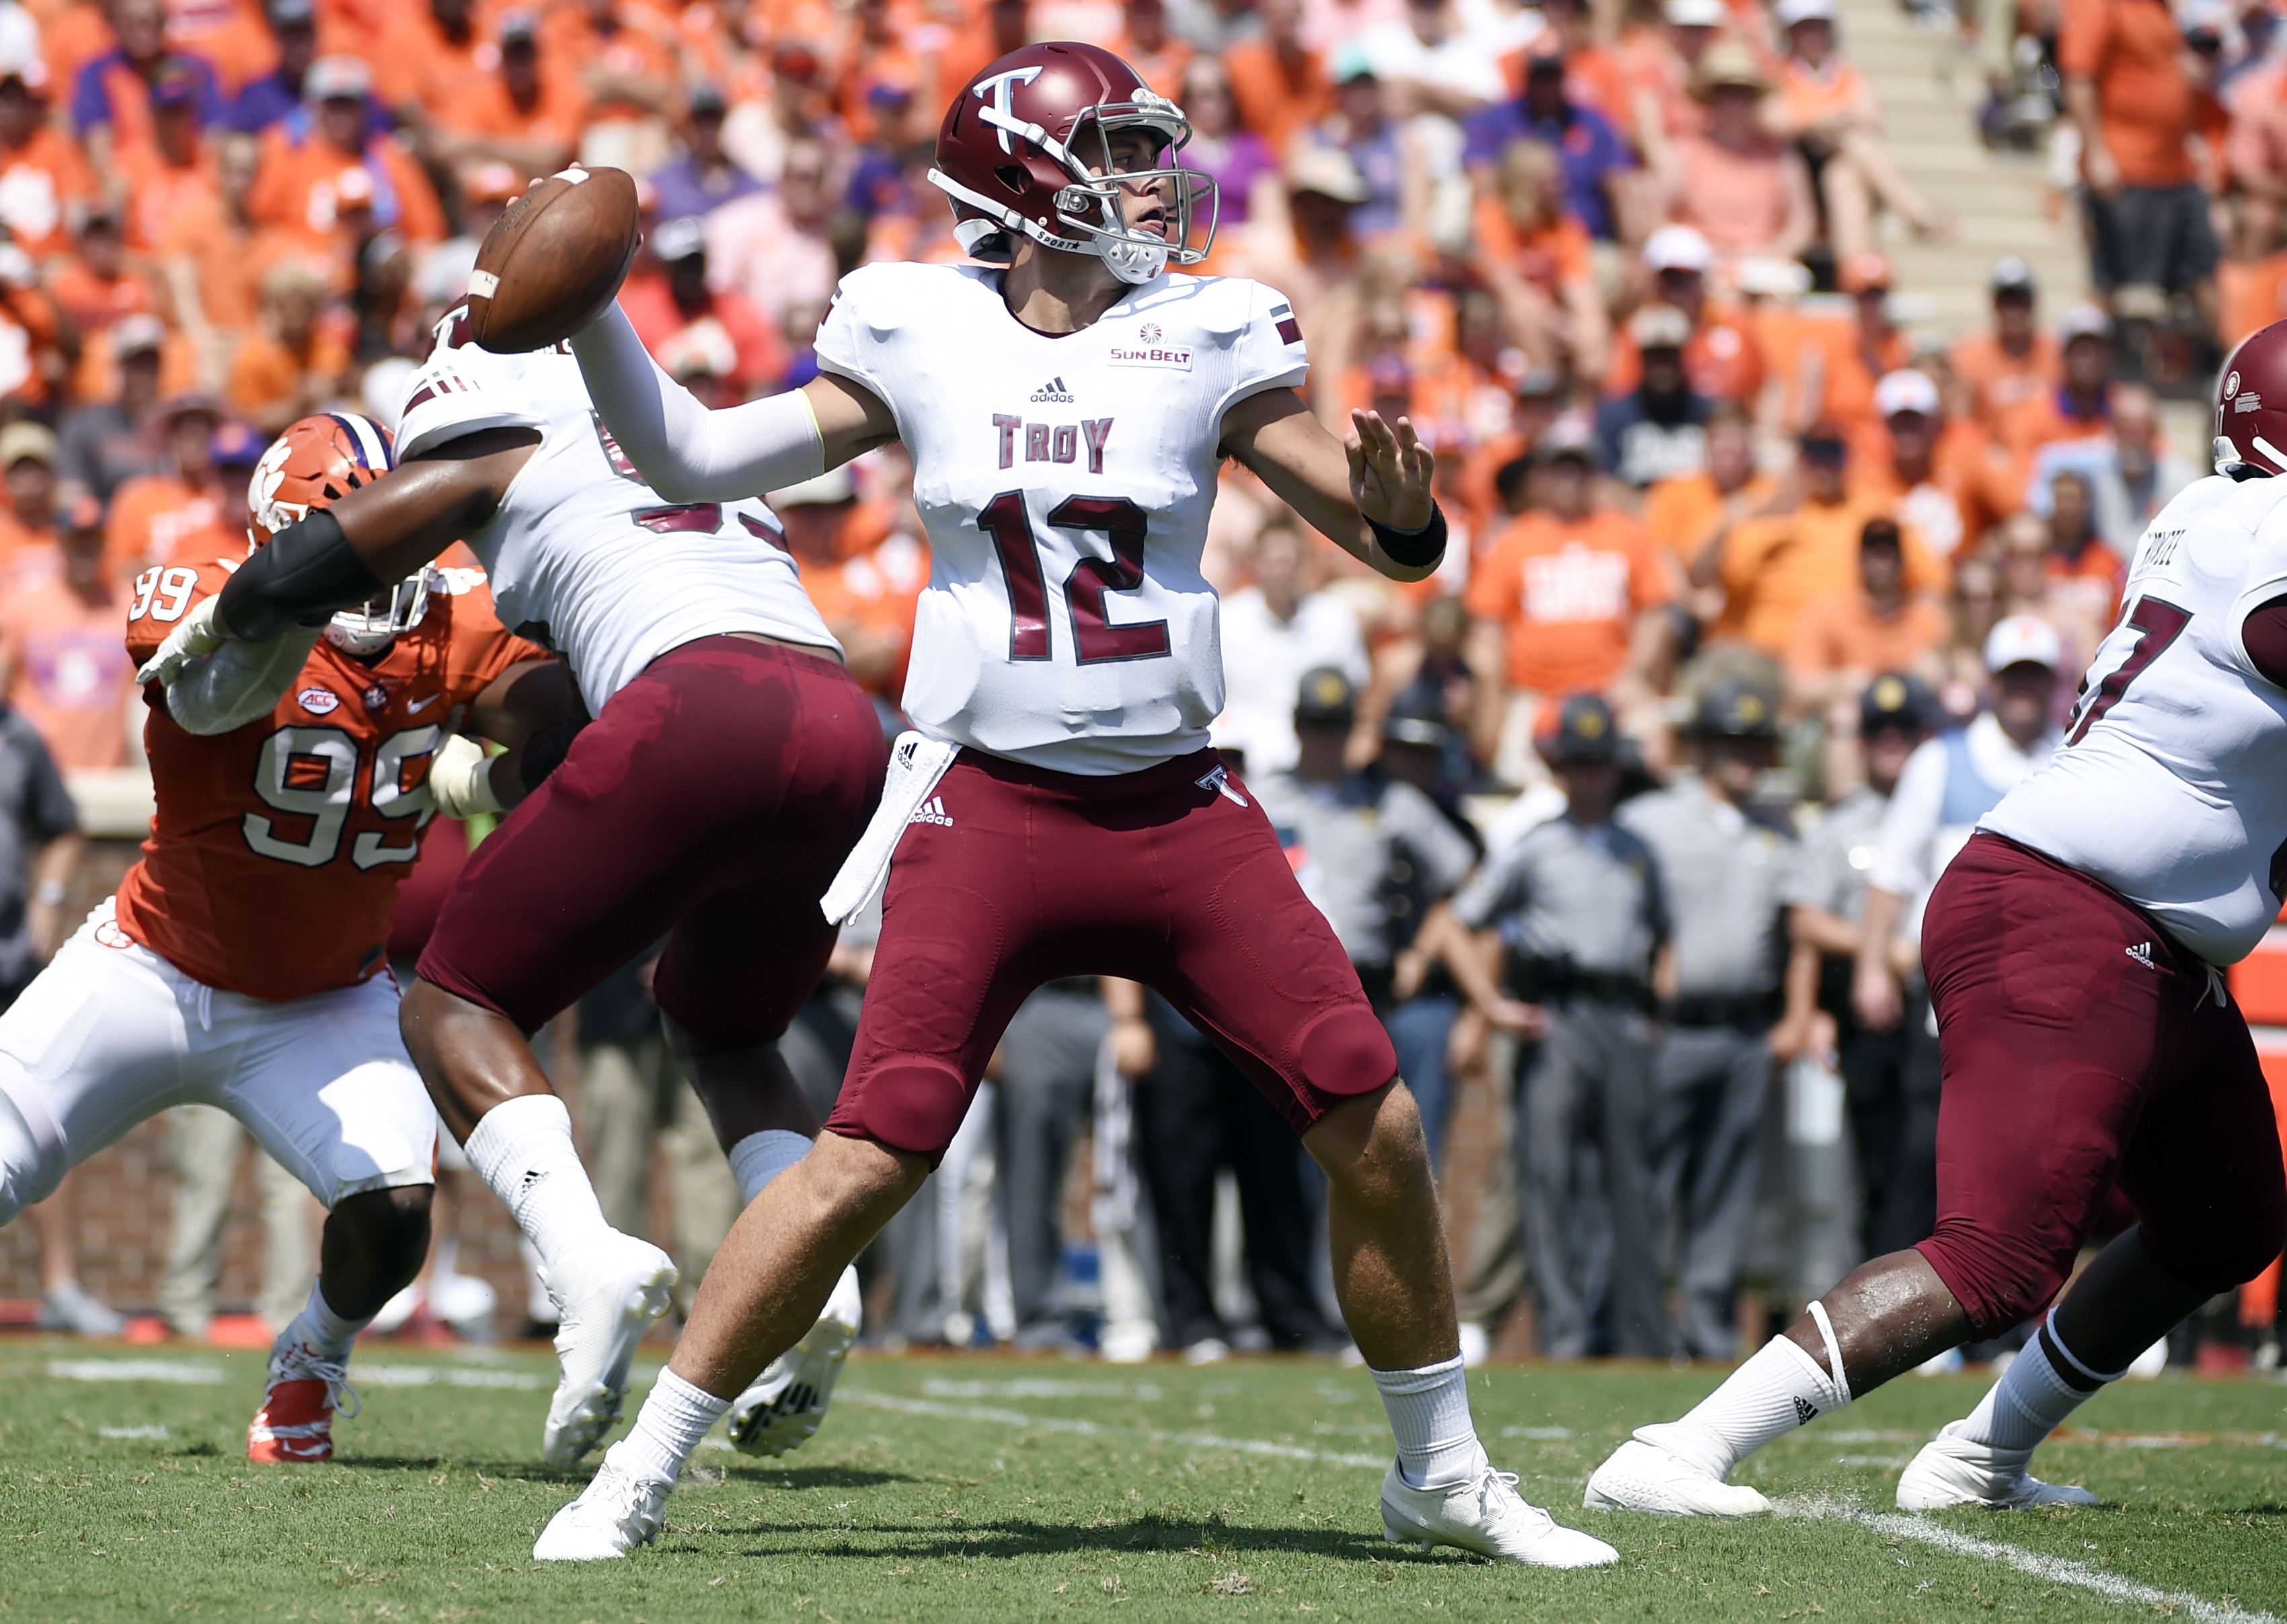 FILE - In this Sept. 10, 2016, file photo, Troy quarterback Brandon Silvers (12) looks to pass against Clemson during the first half of an NCAA college football game in Clemson, S.C. The Troy Trojans have staged a major comeback. A program that hasn't had